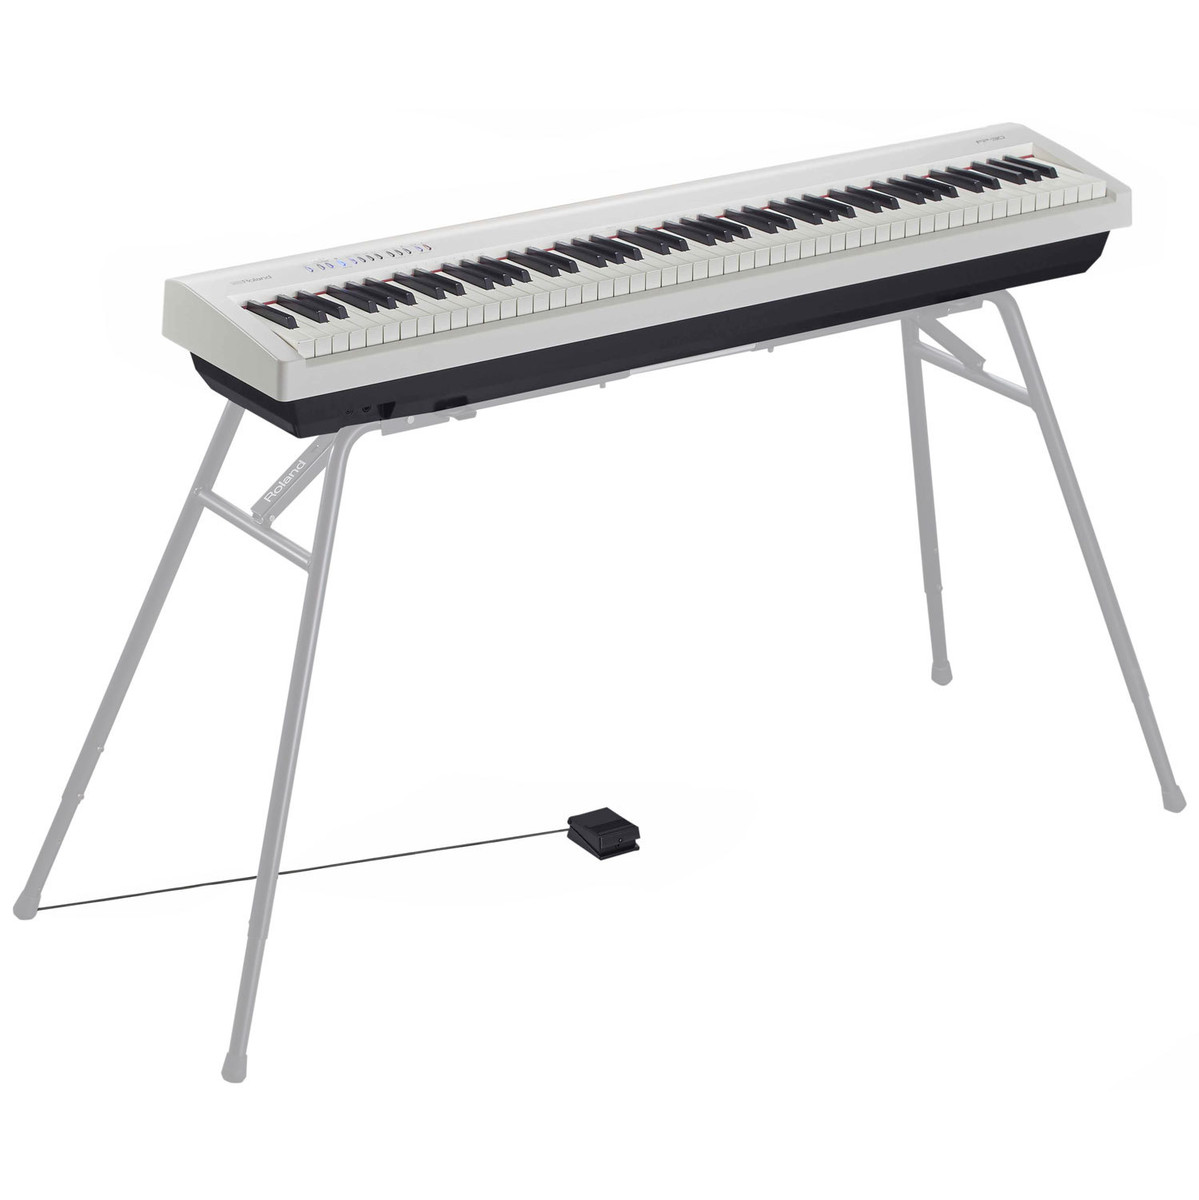 roland fp 30 supernatural digital piano white b stock at. Black Bedroom Furniture Sets. Home Design Ideas